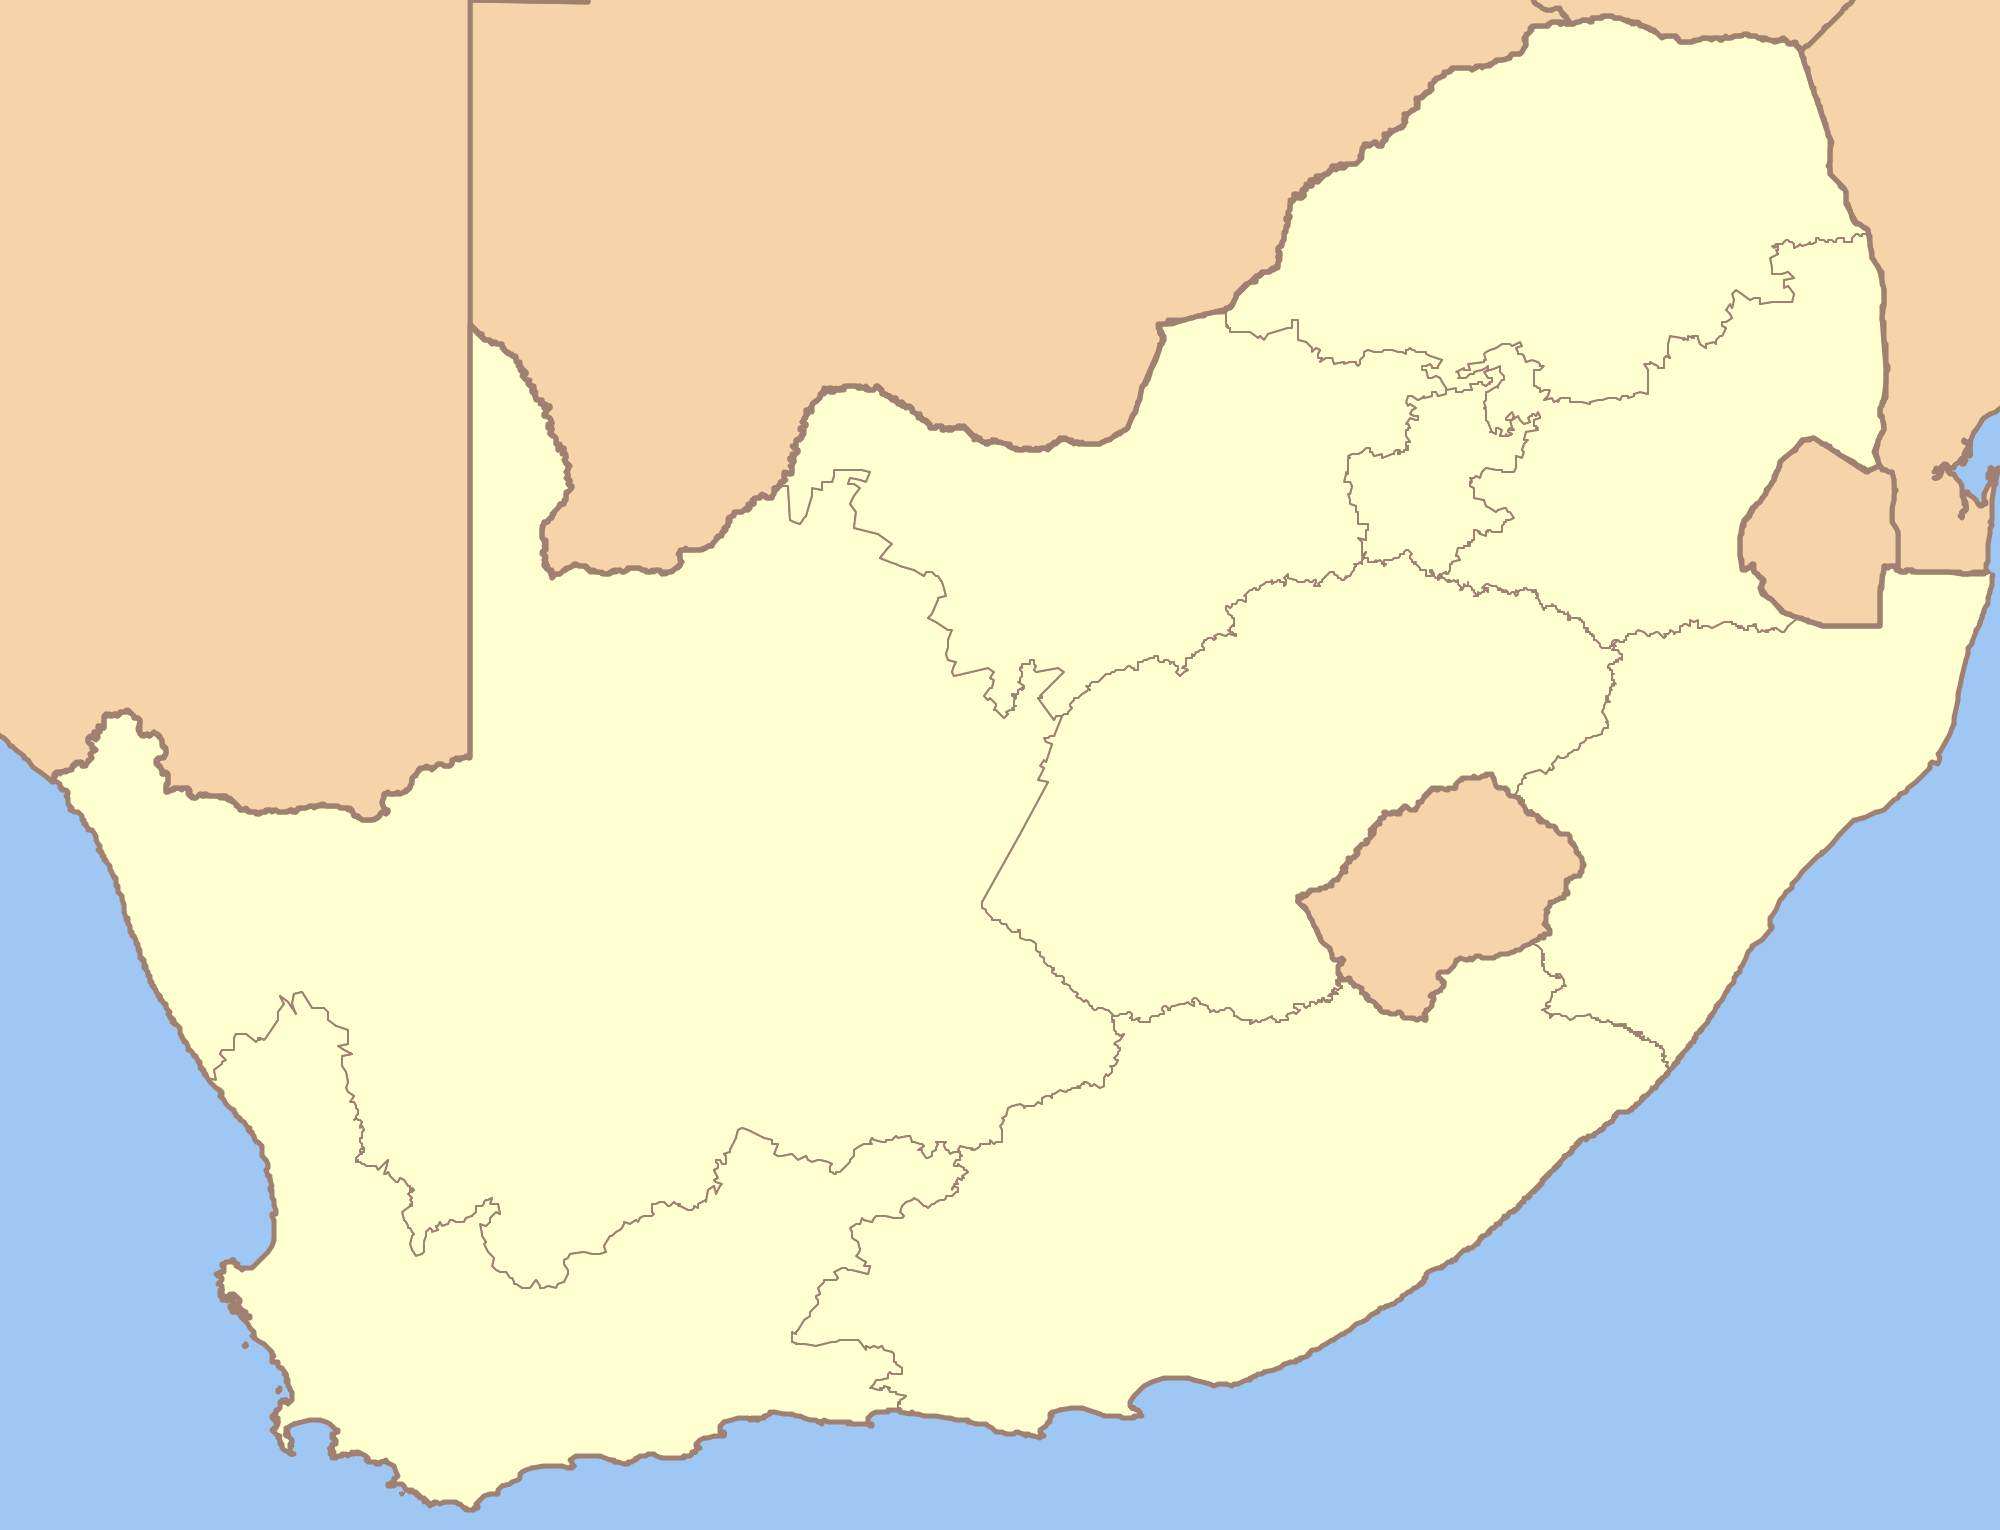 South Africa Blank Locator Map